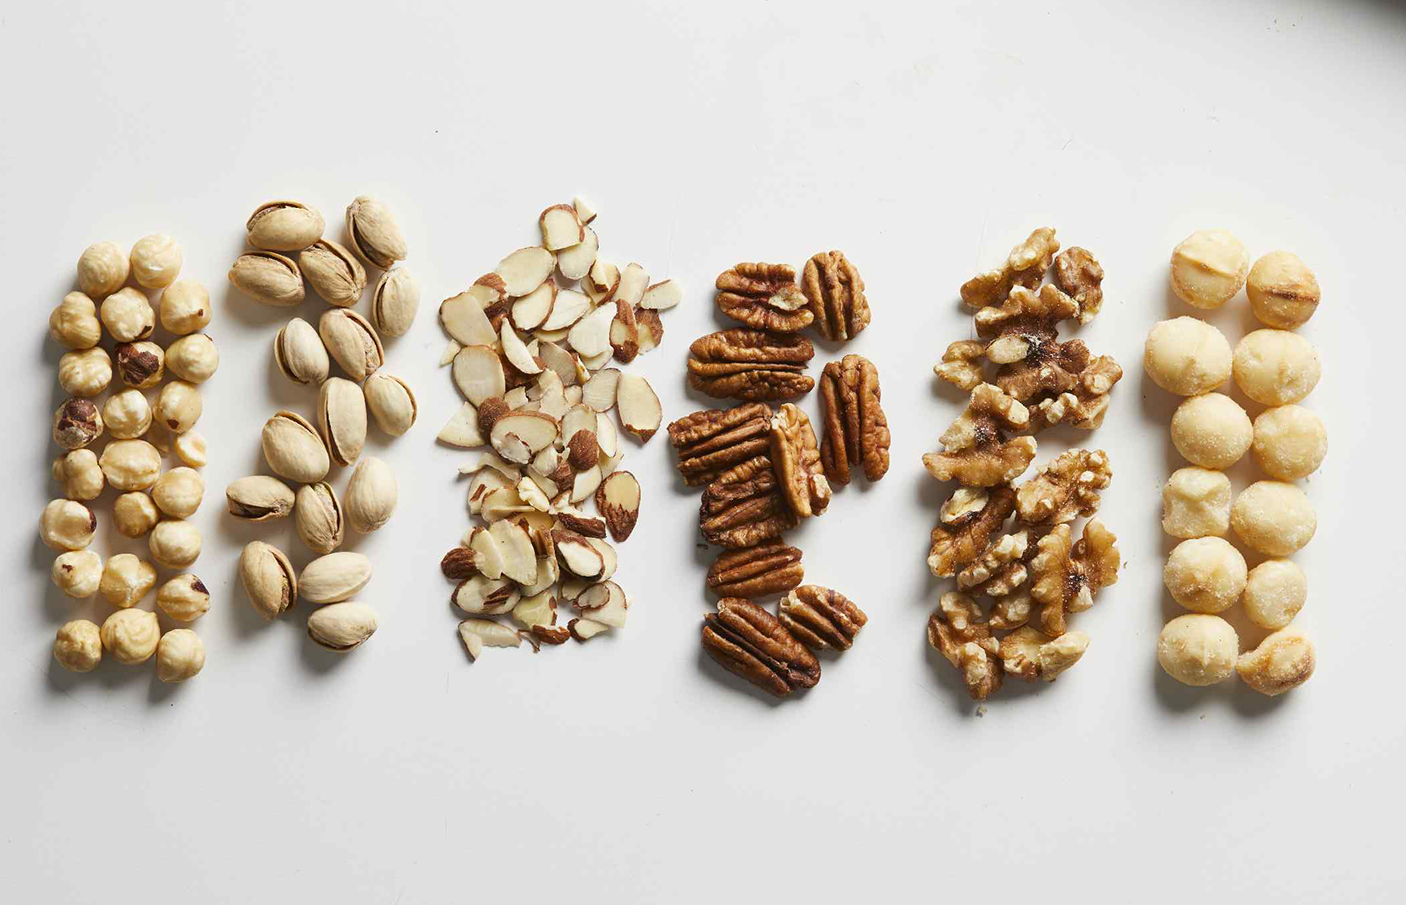 T or F: If you want a snack that's good for your heart, nuts are a great choice.